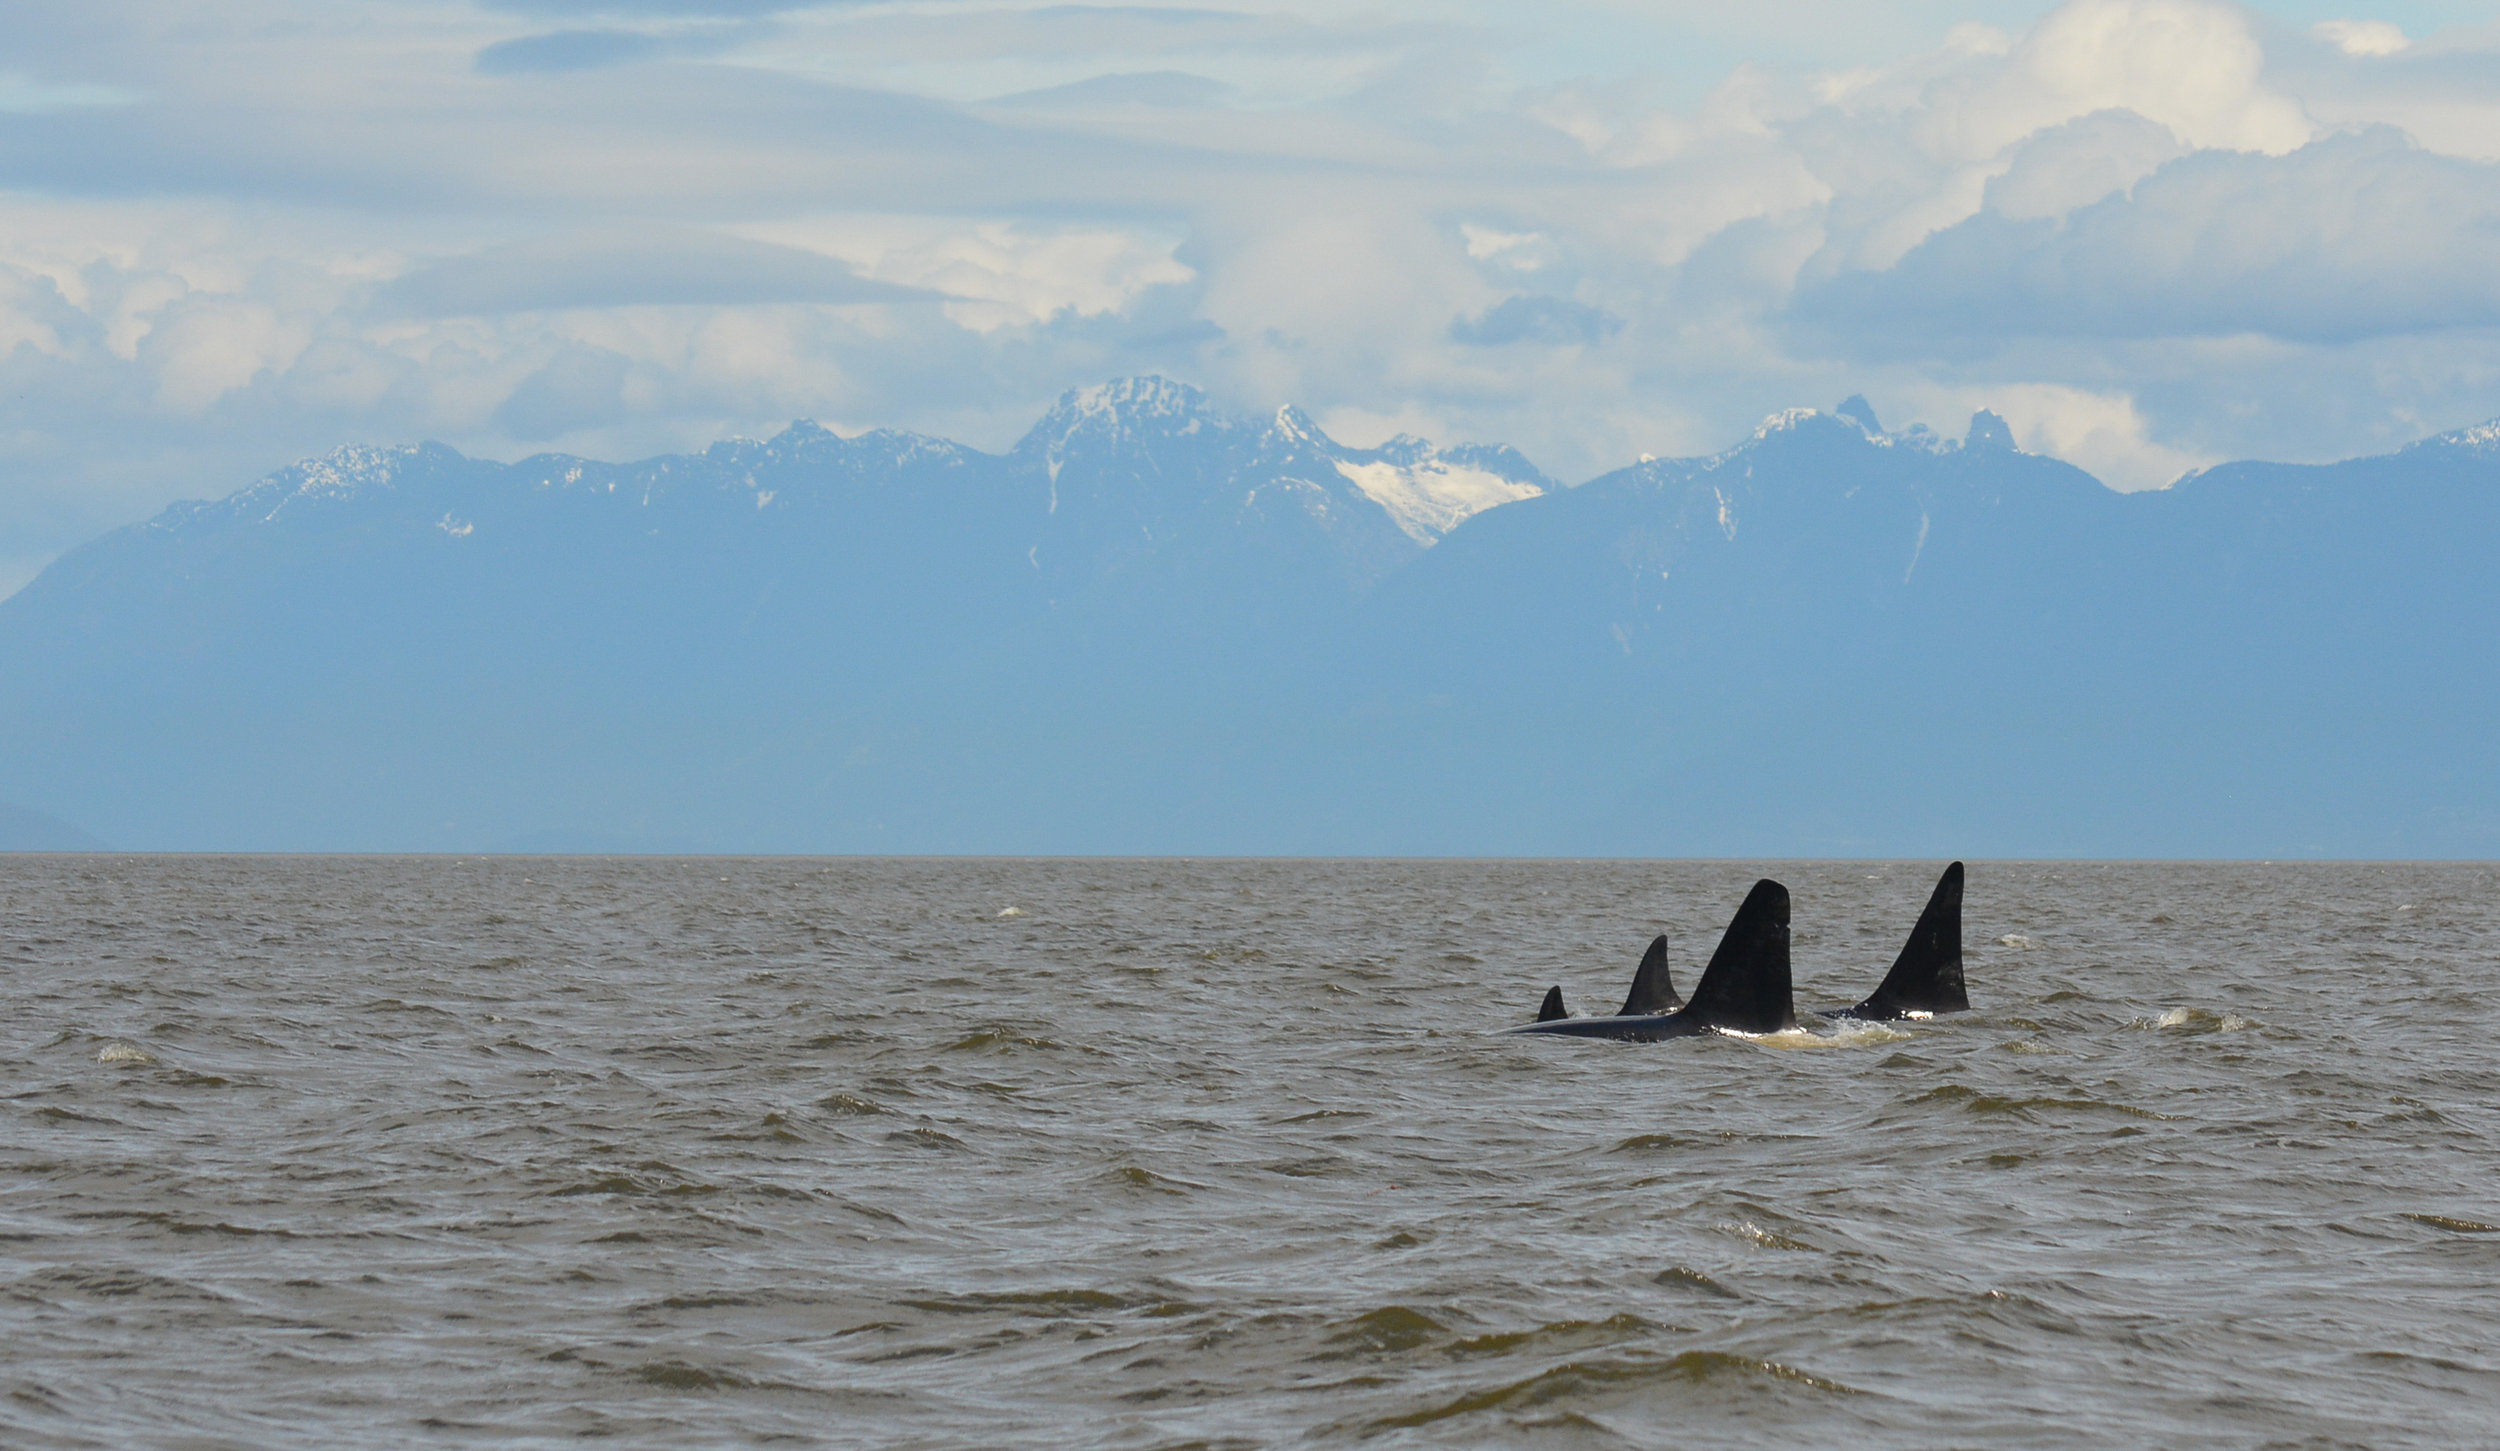 All four whales surfacing together. Photo by Val Watson